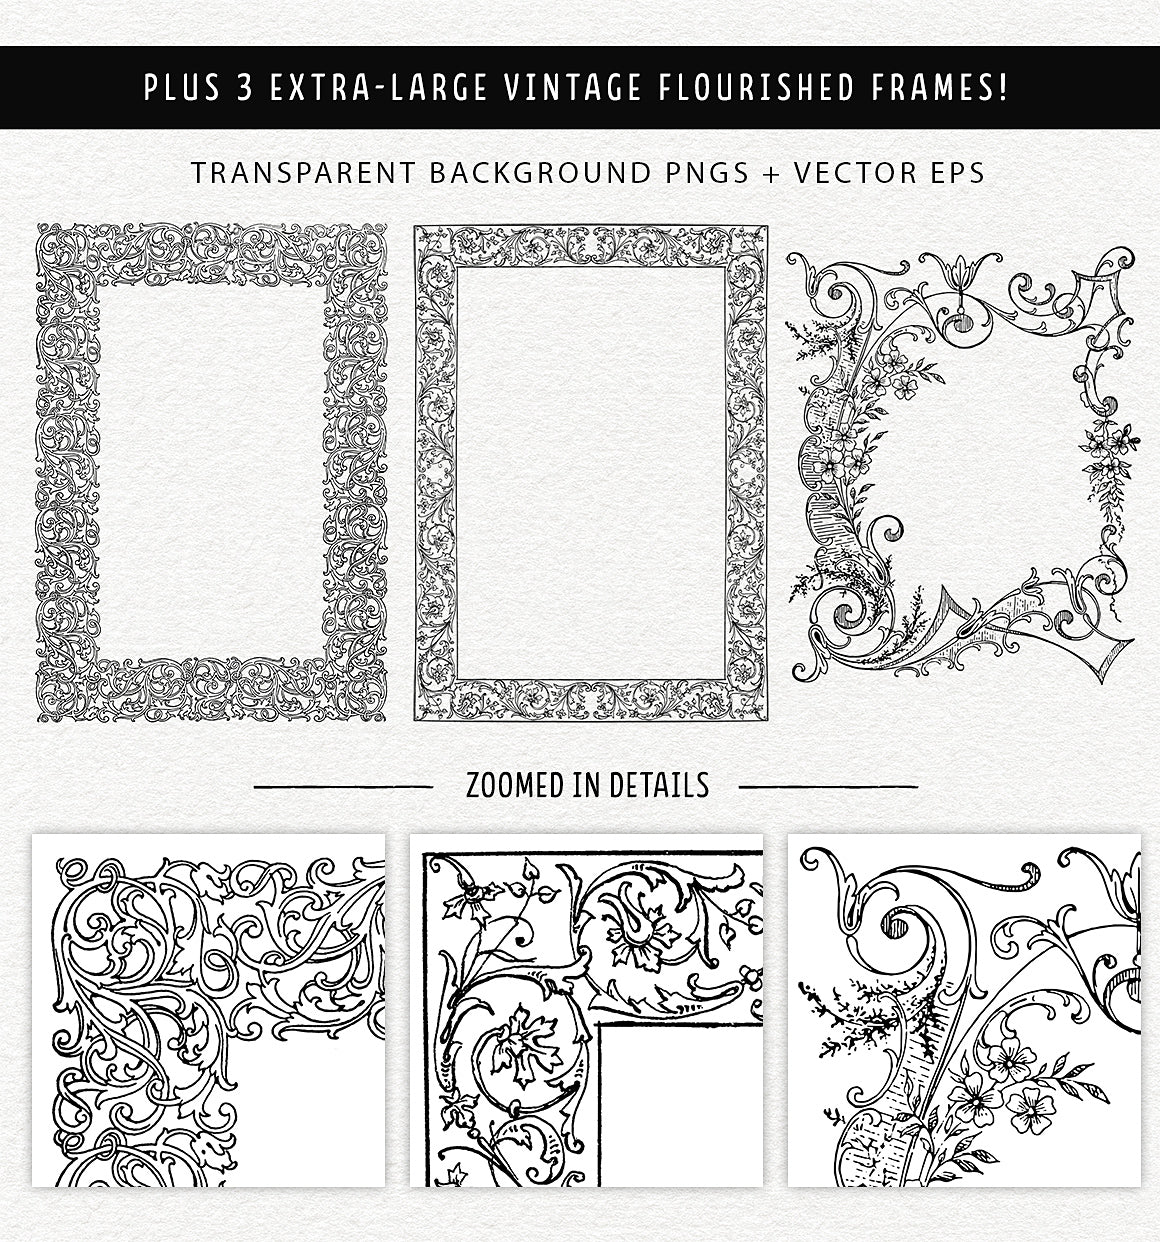 Large vintage flourish frames or border overlays and vector graphics.